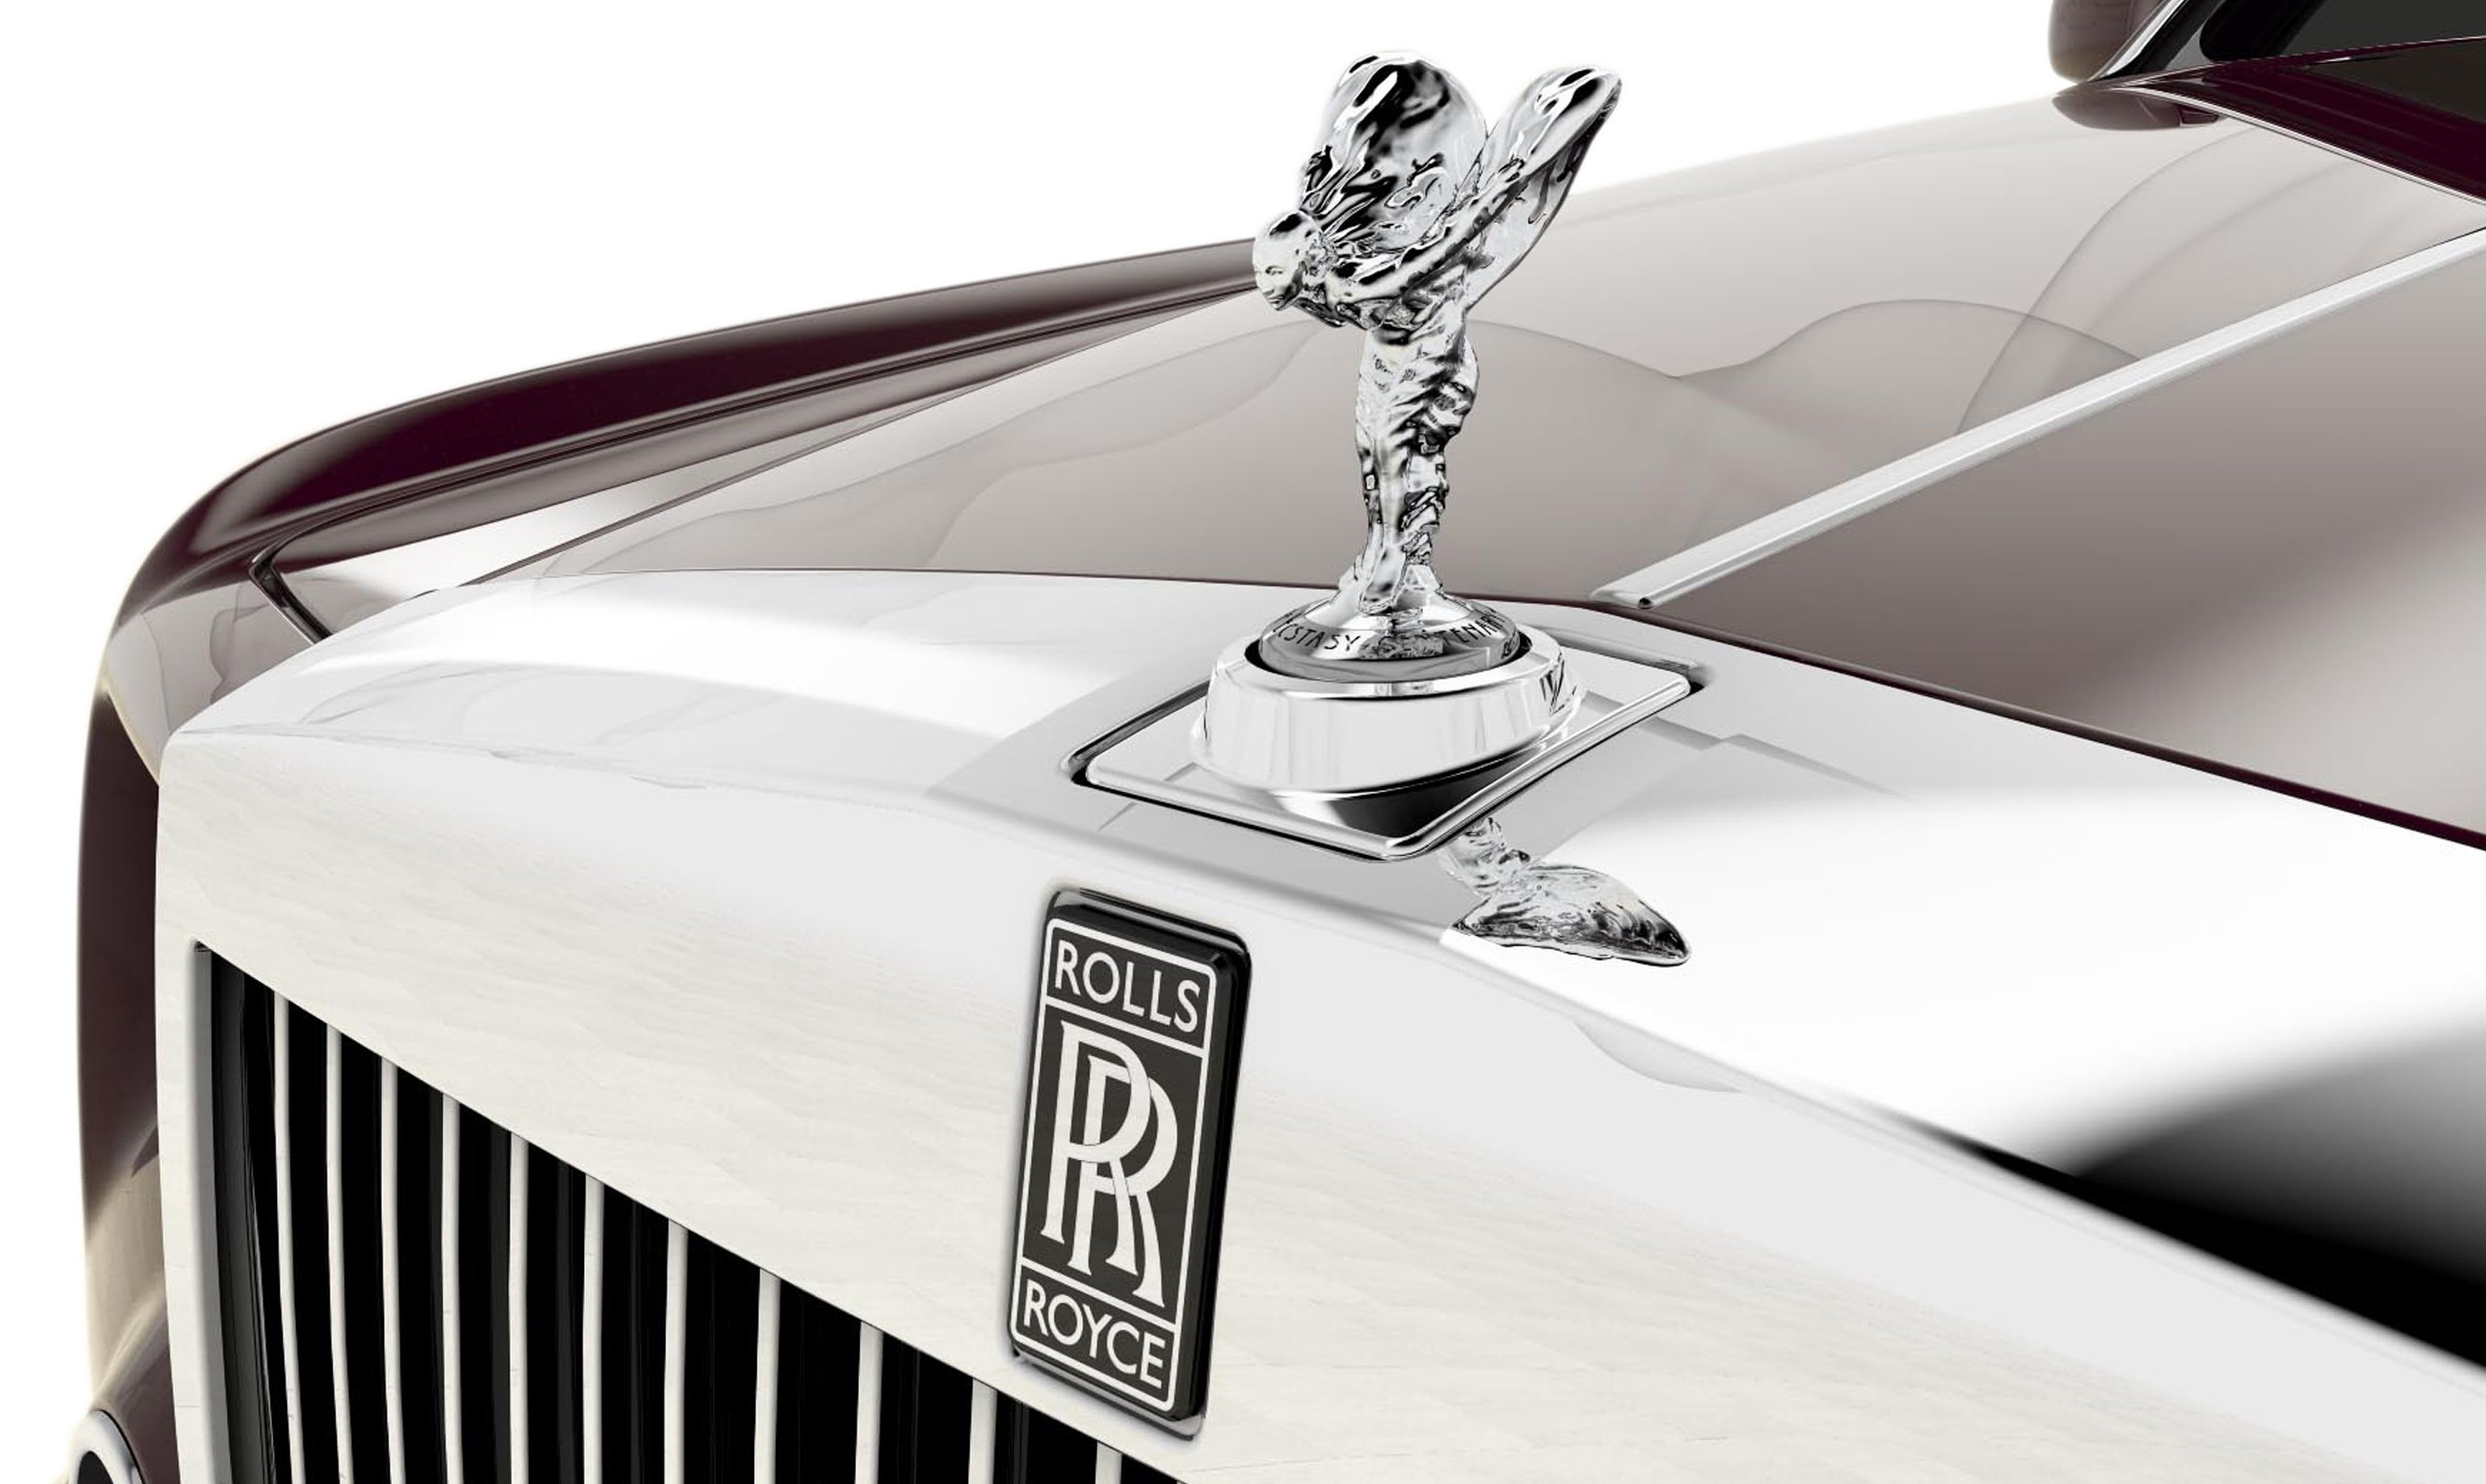 Only The Flash Can Flick The Retractable Rolls Royce Spirit Of Ecstasy Emblem Luxurylaunches